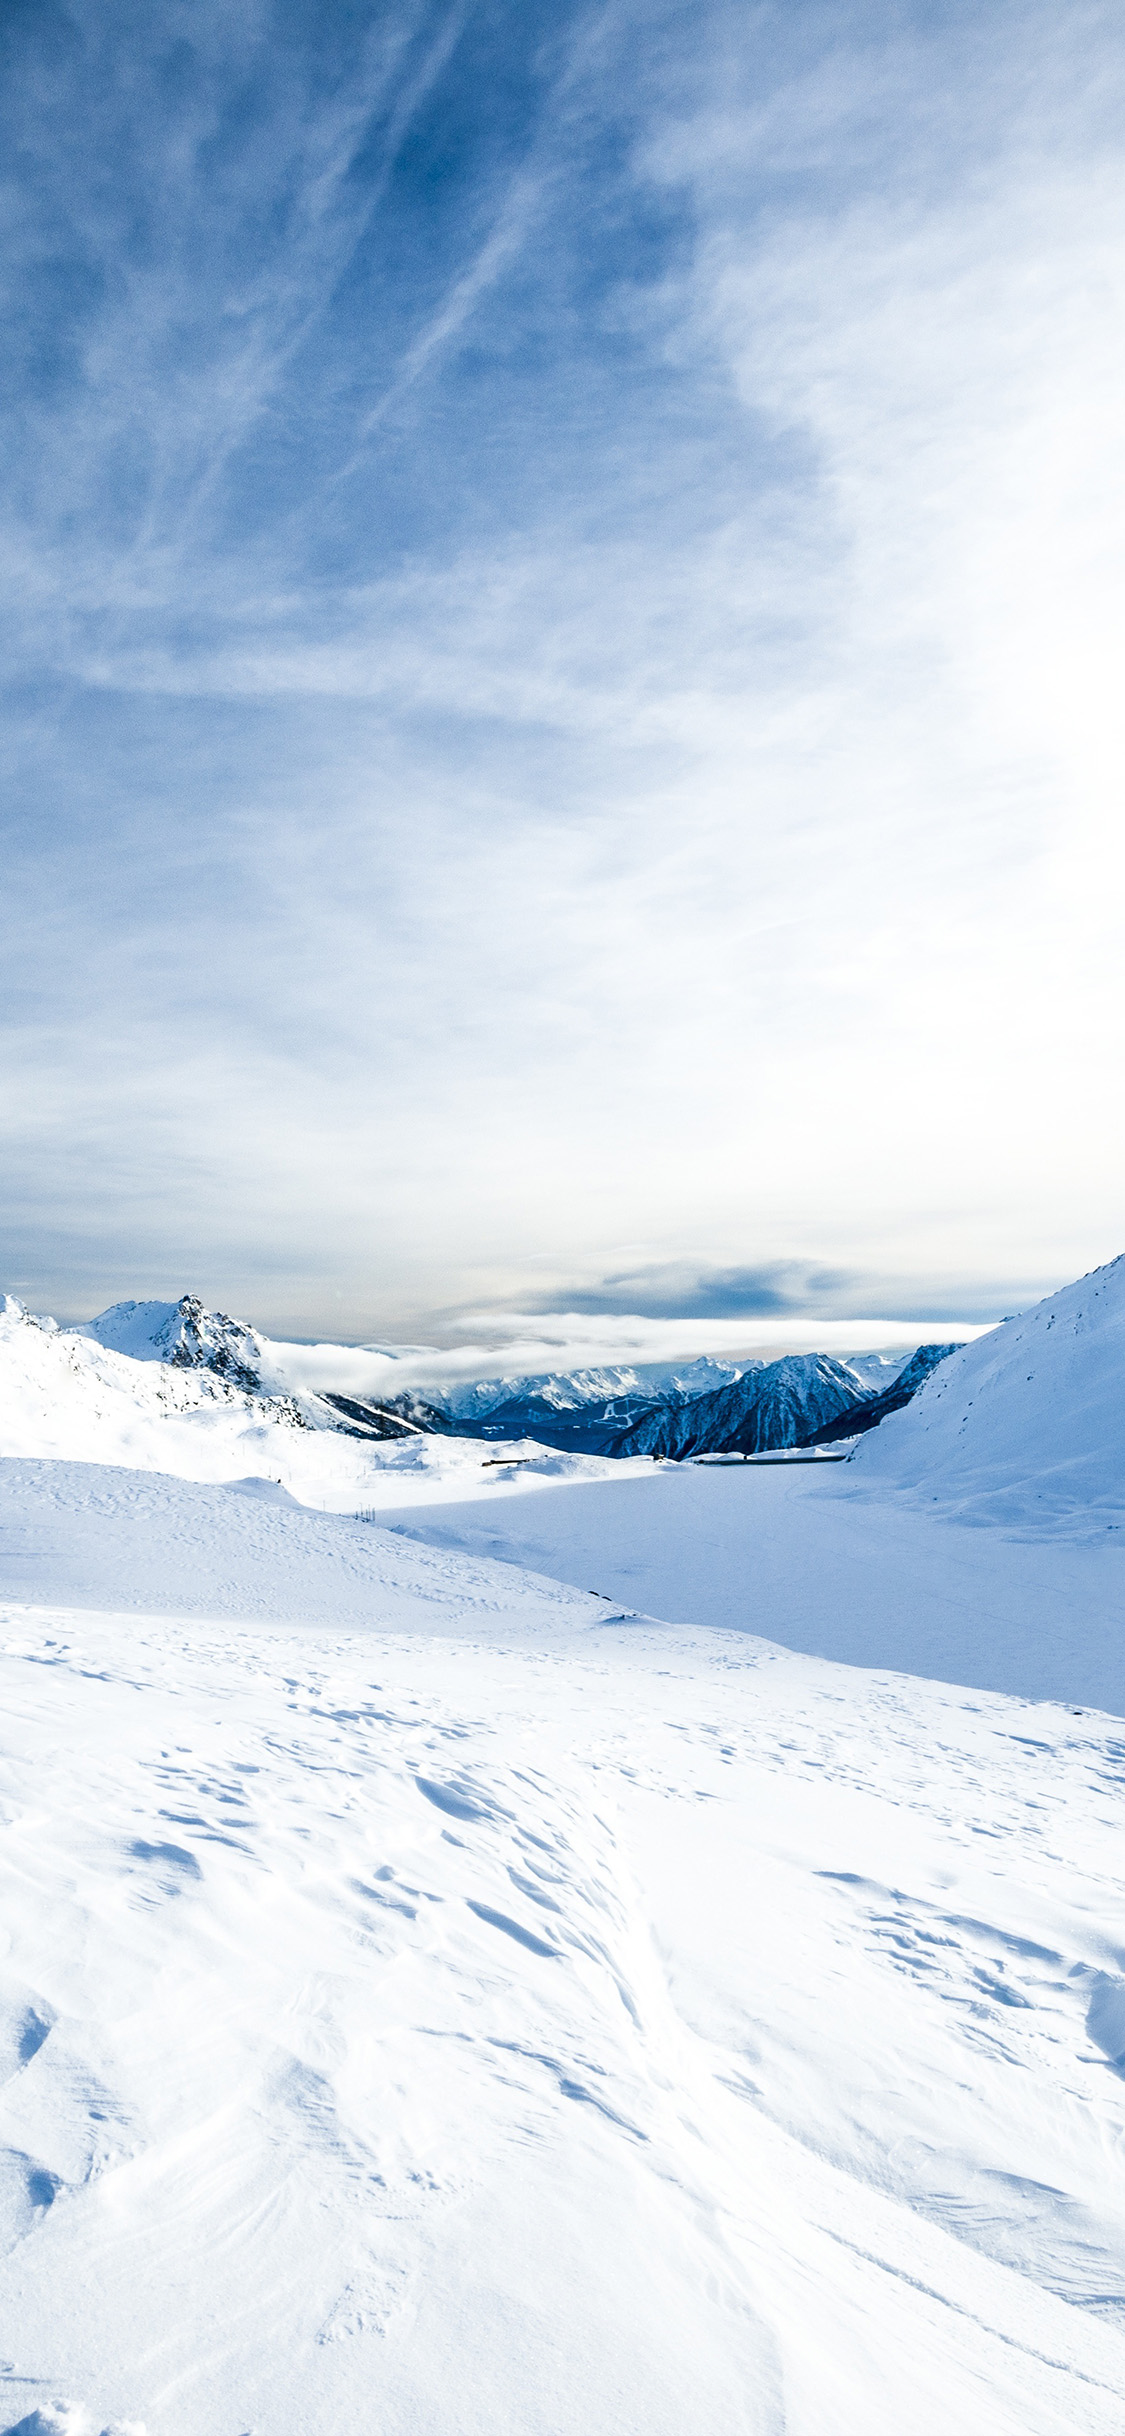 iPhonexpapers.com-Apple-iPhone-wallpaper-nz84-winter-snow-mountain-white-nature